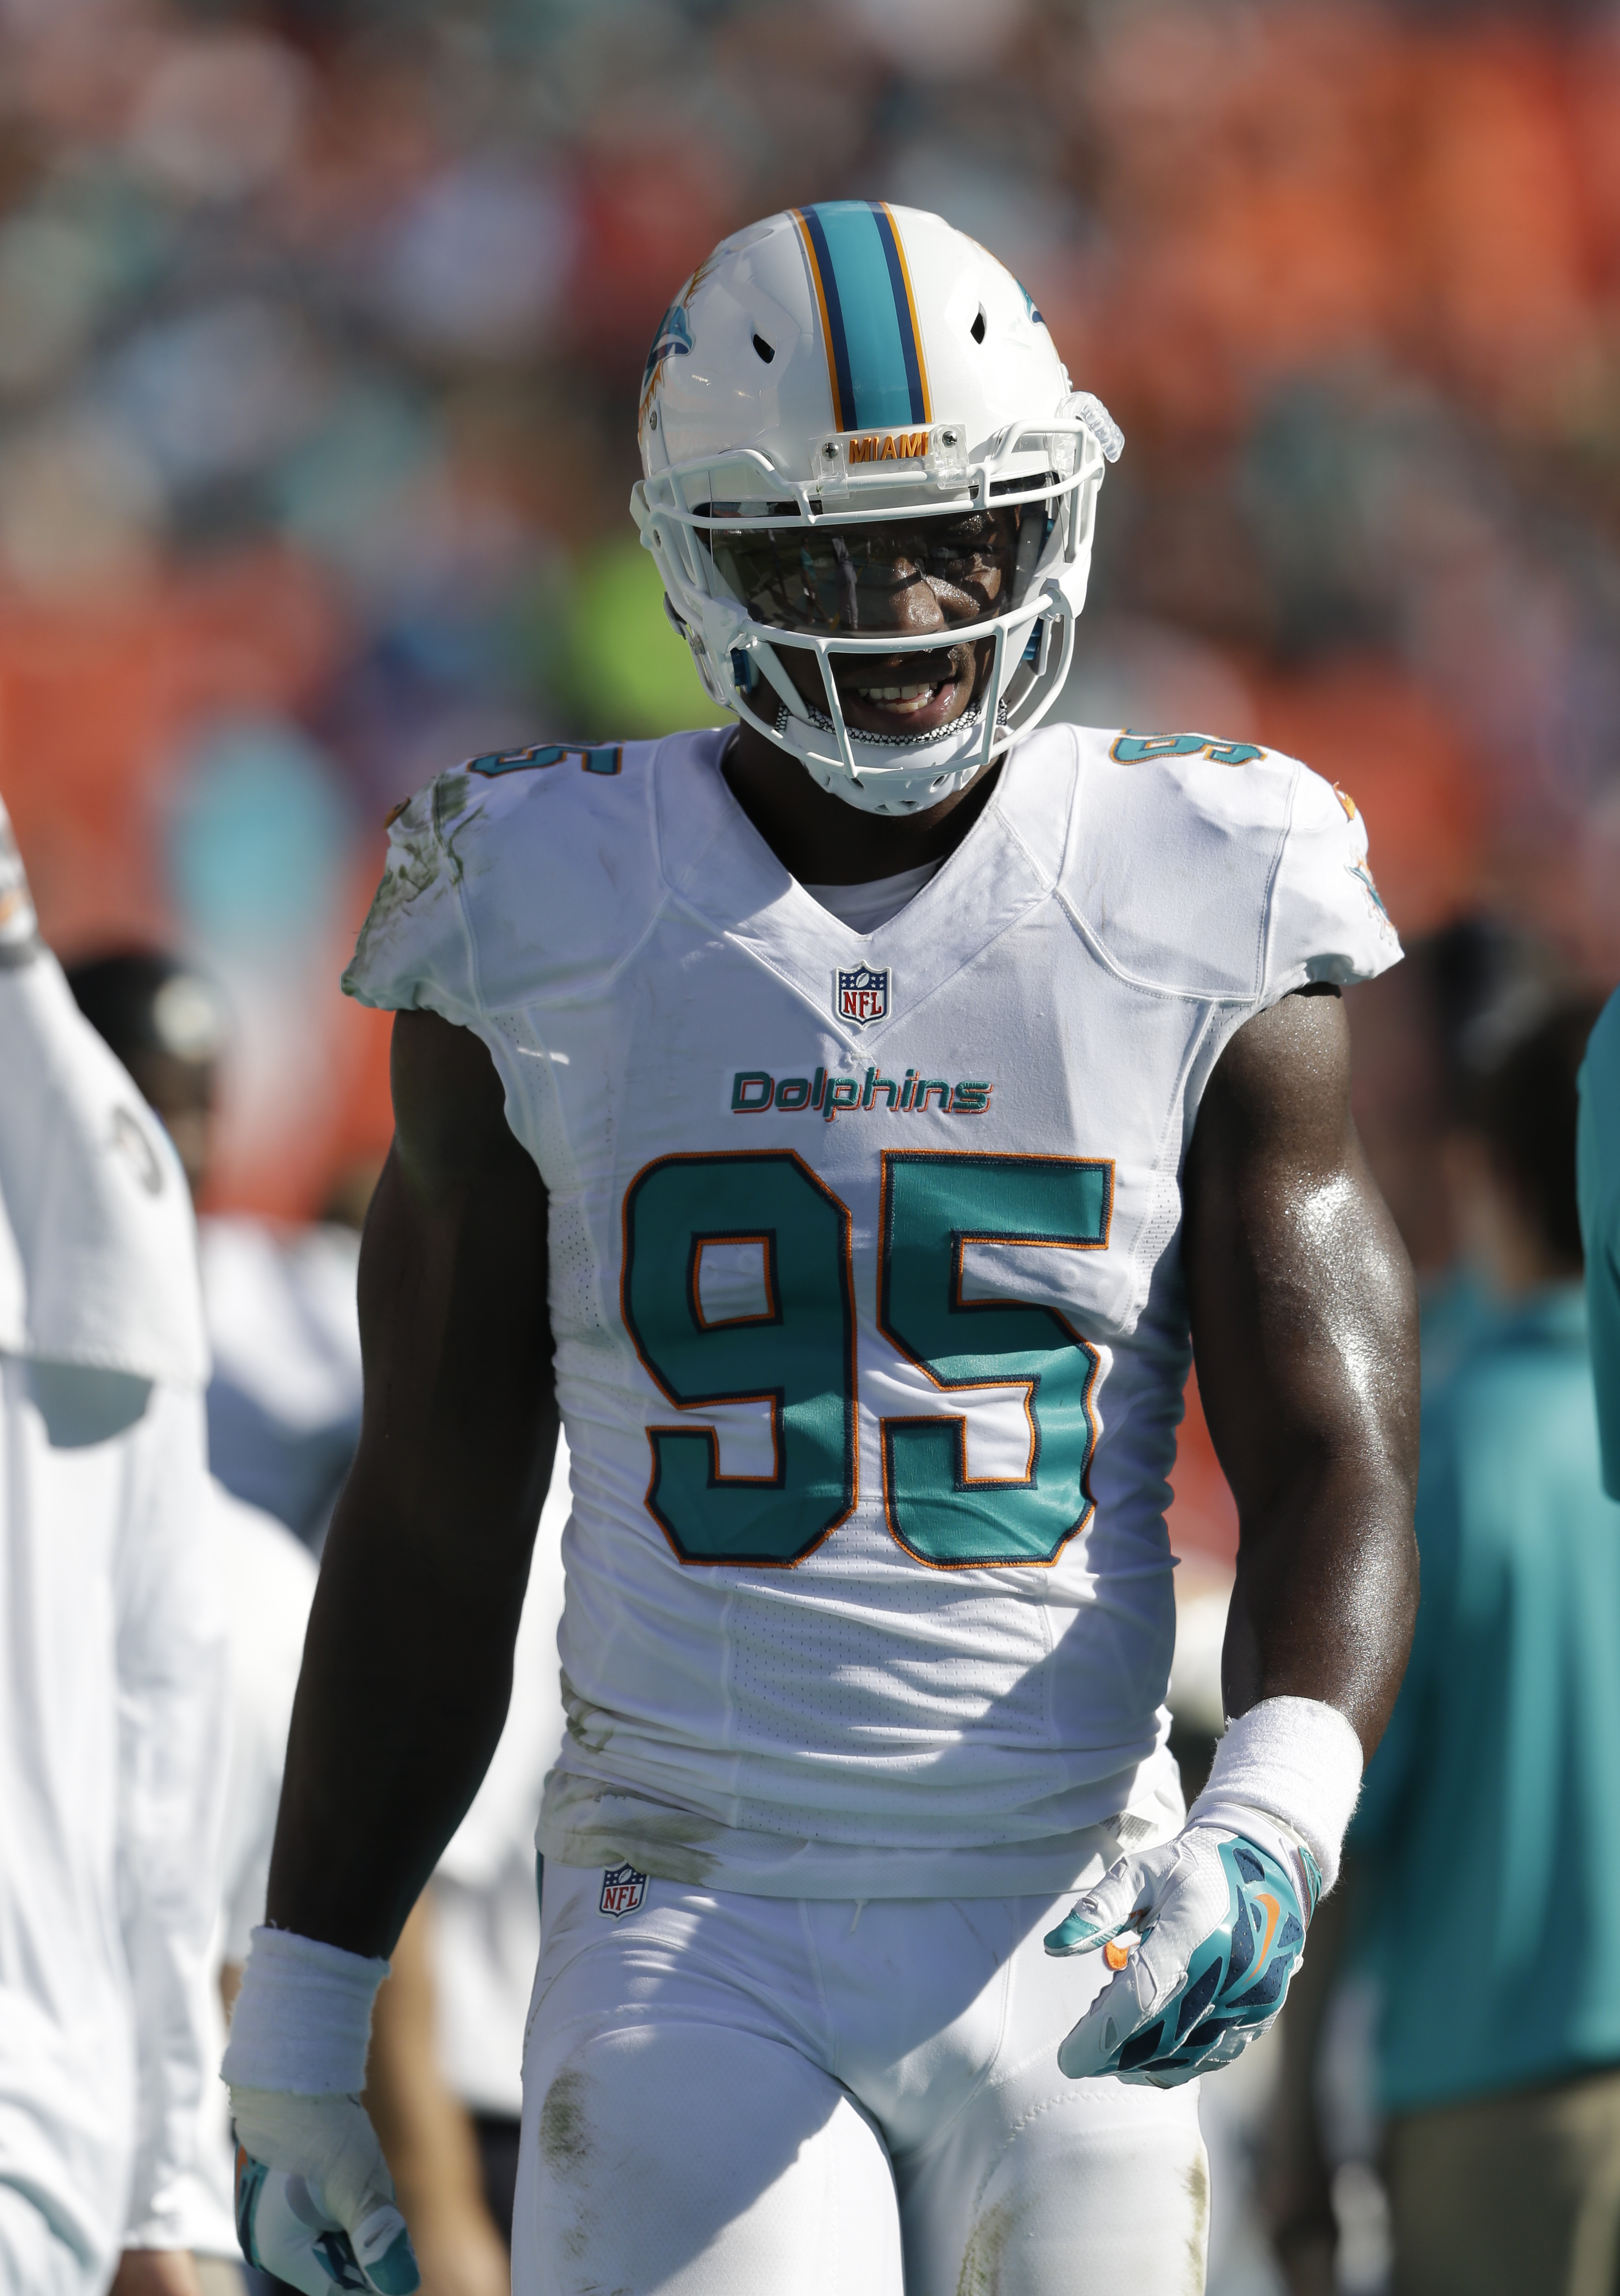 Miami Dolphins defensive end Dion Jordan (95) walks the sidelines during the first half of an NFL football game New York Jets, Sunday, Dec. 28, 2014, in Miami Gardens, Fla. (AP Photo/Wilfredo Lee)